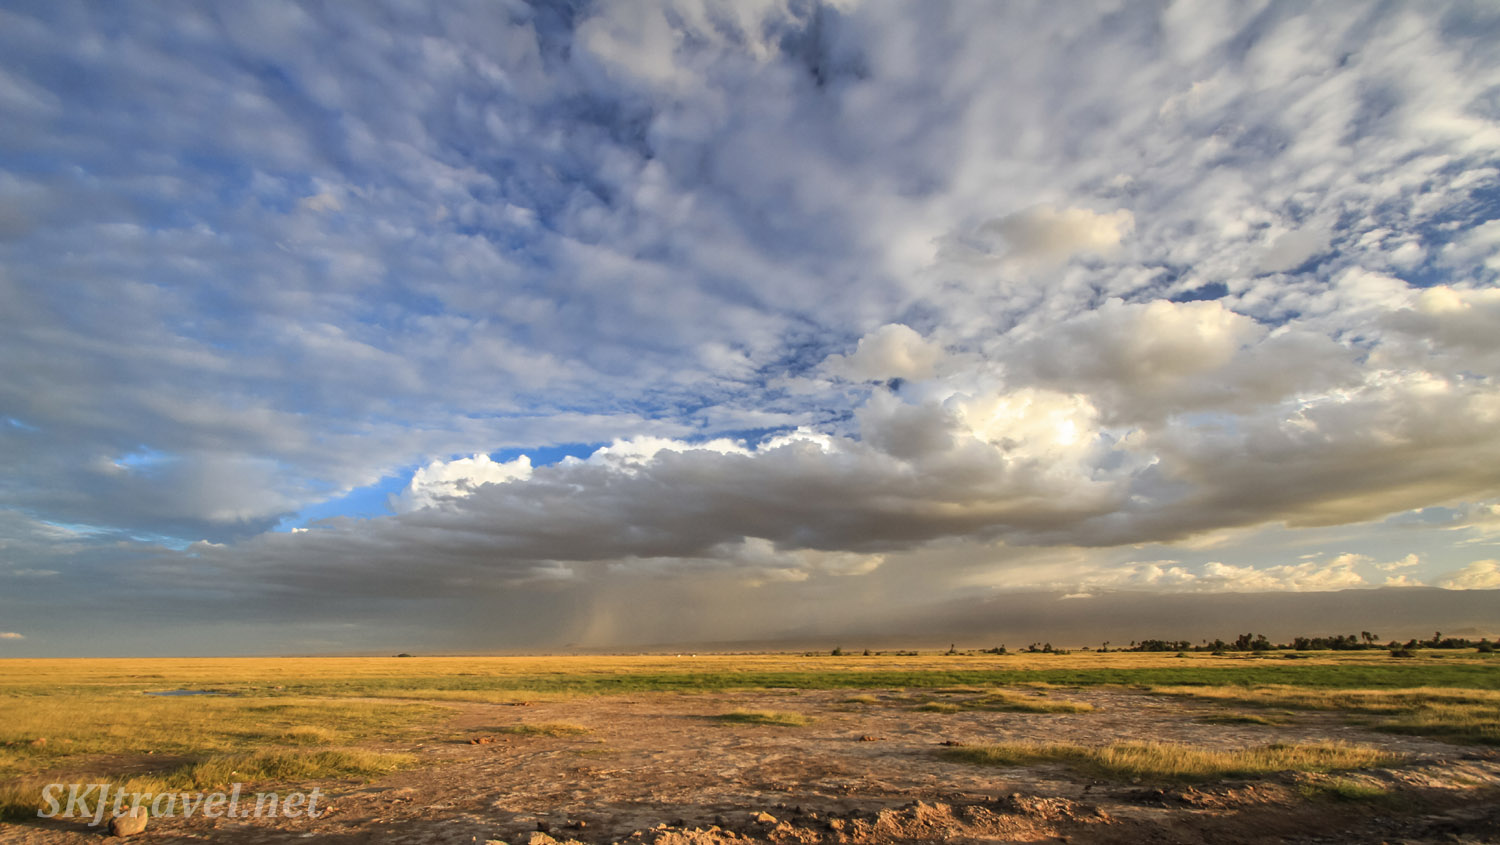 Plains and clouded skies at Amboseli, Kenya.